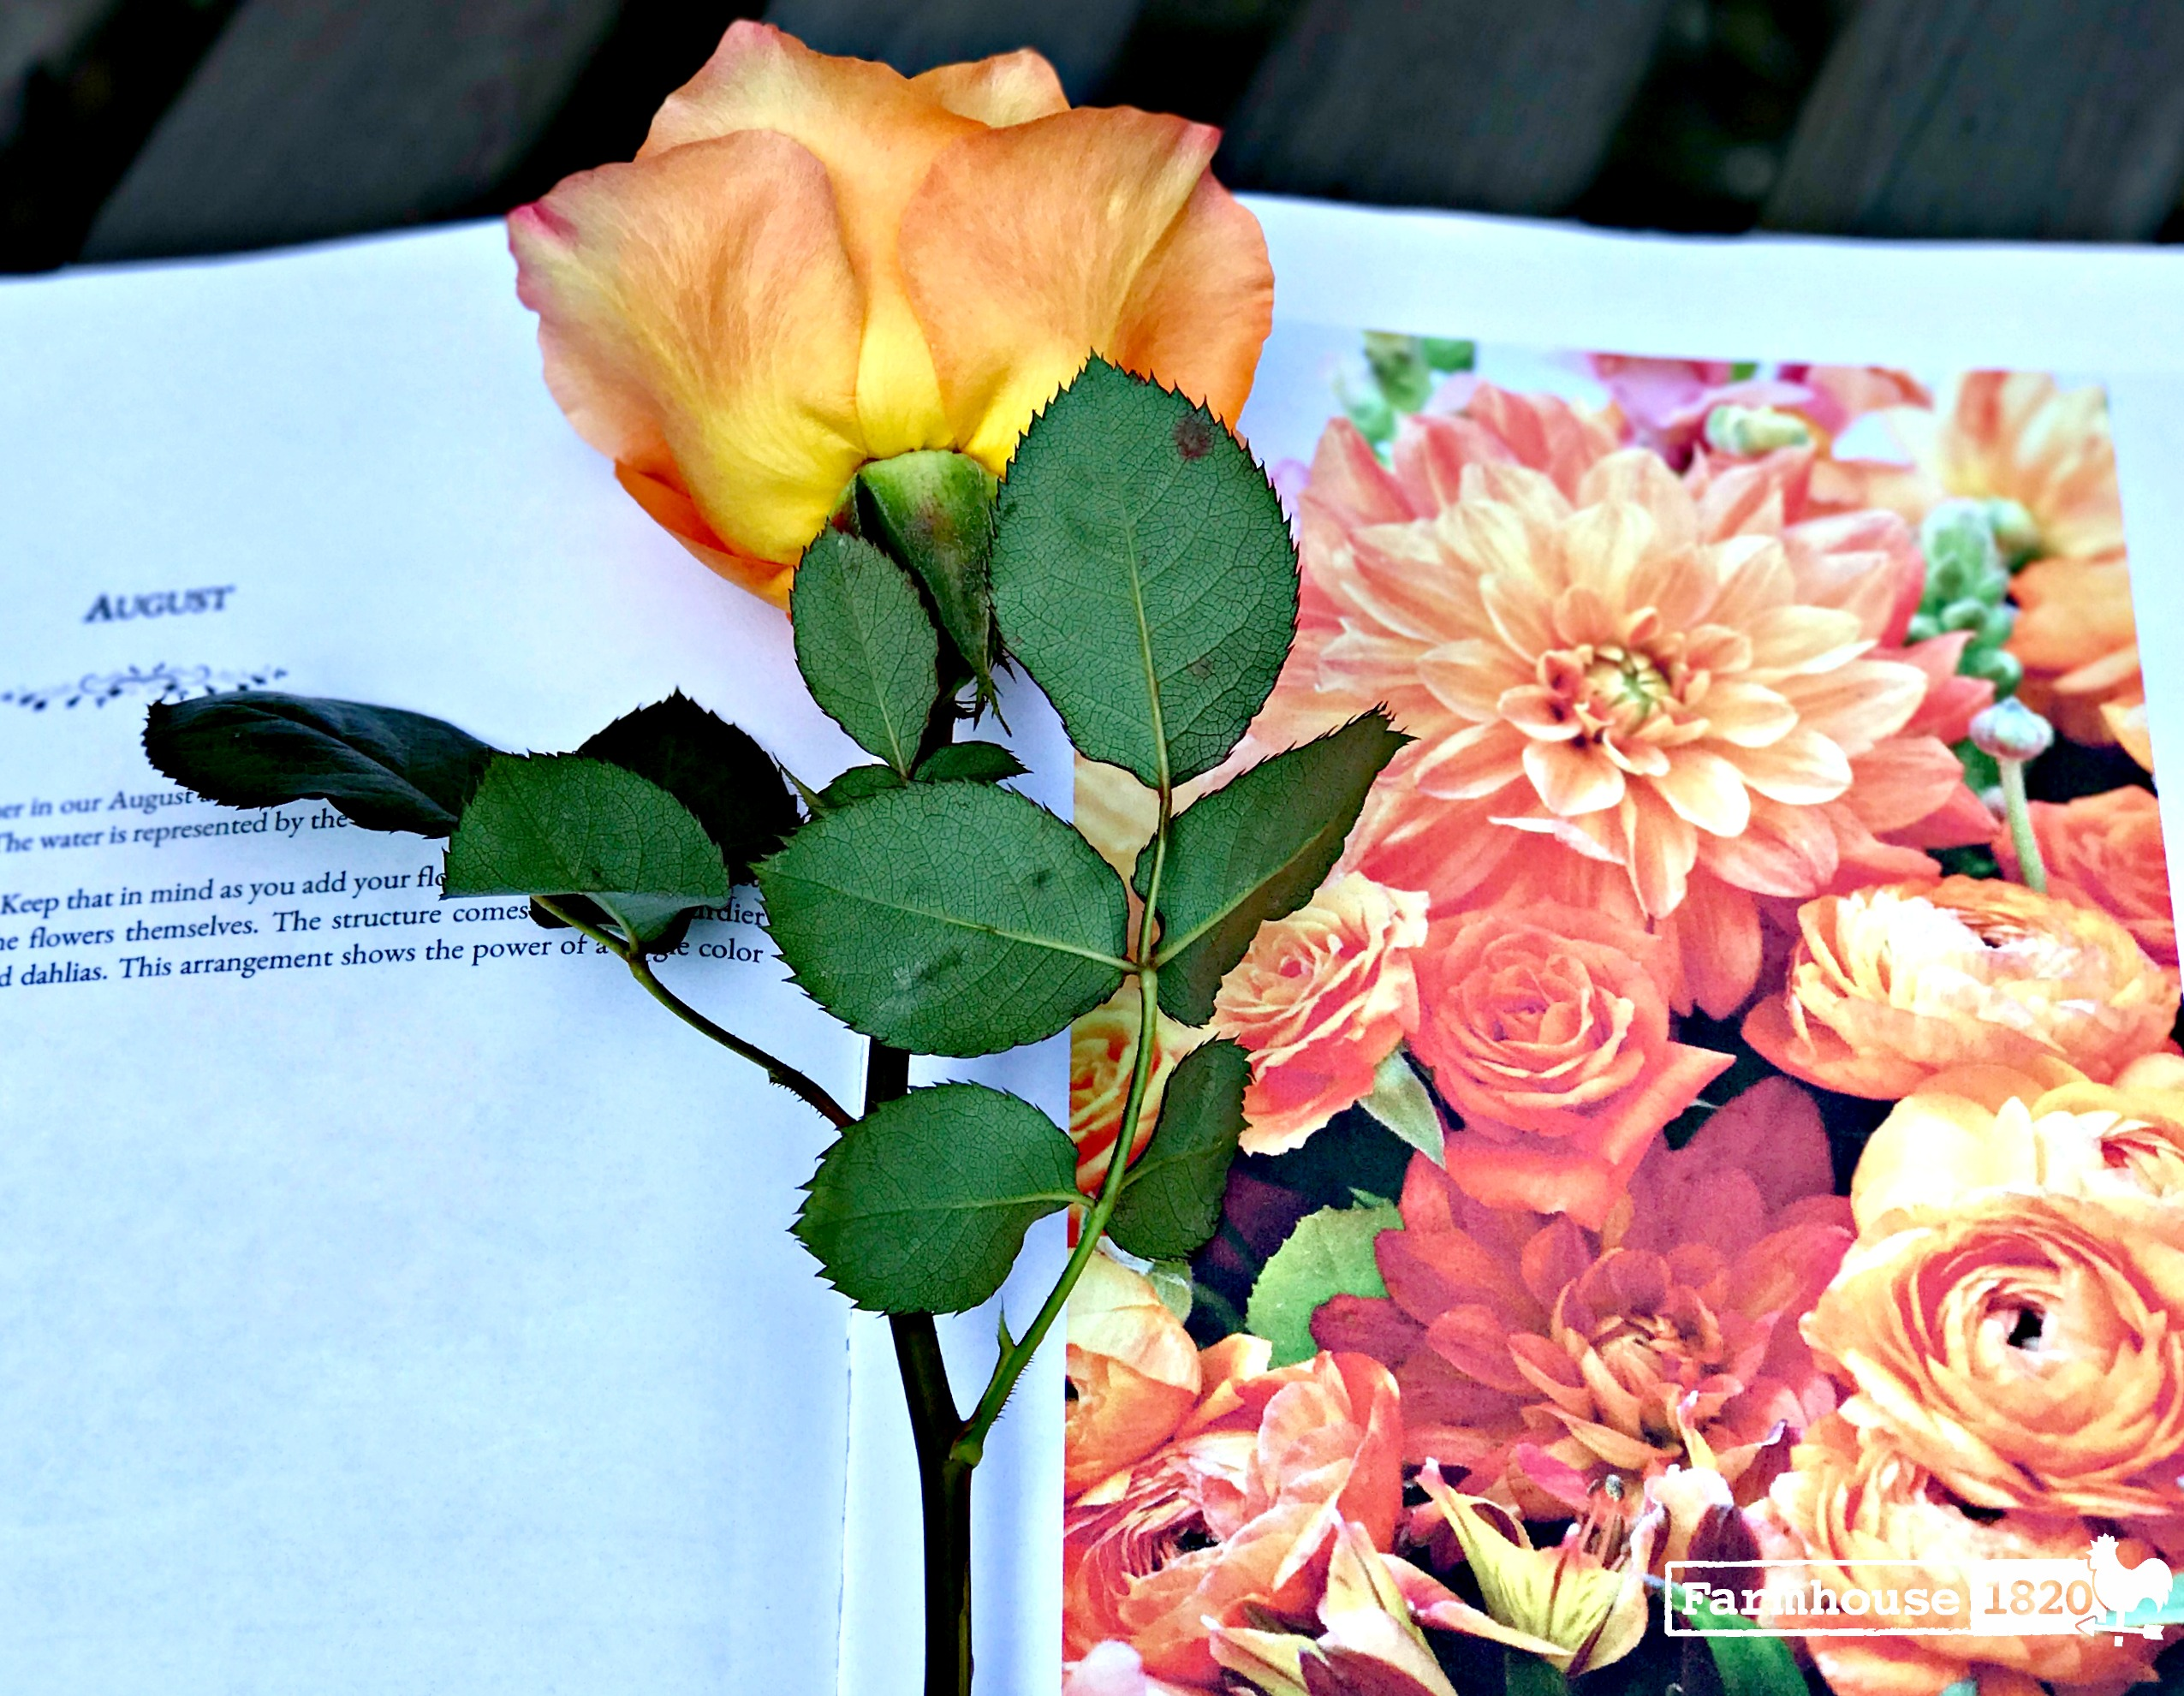 A Year In Flowers - A book review, August